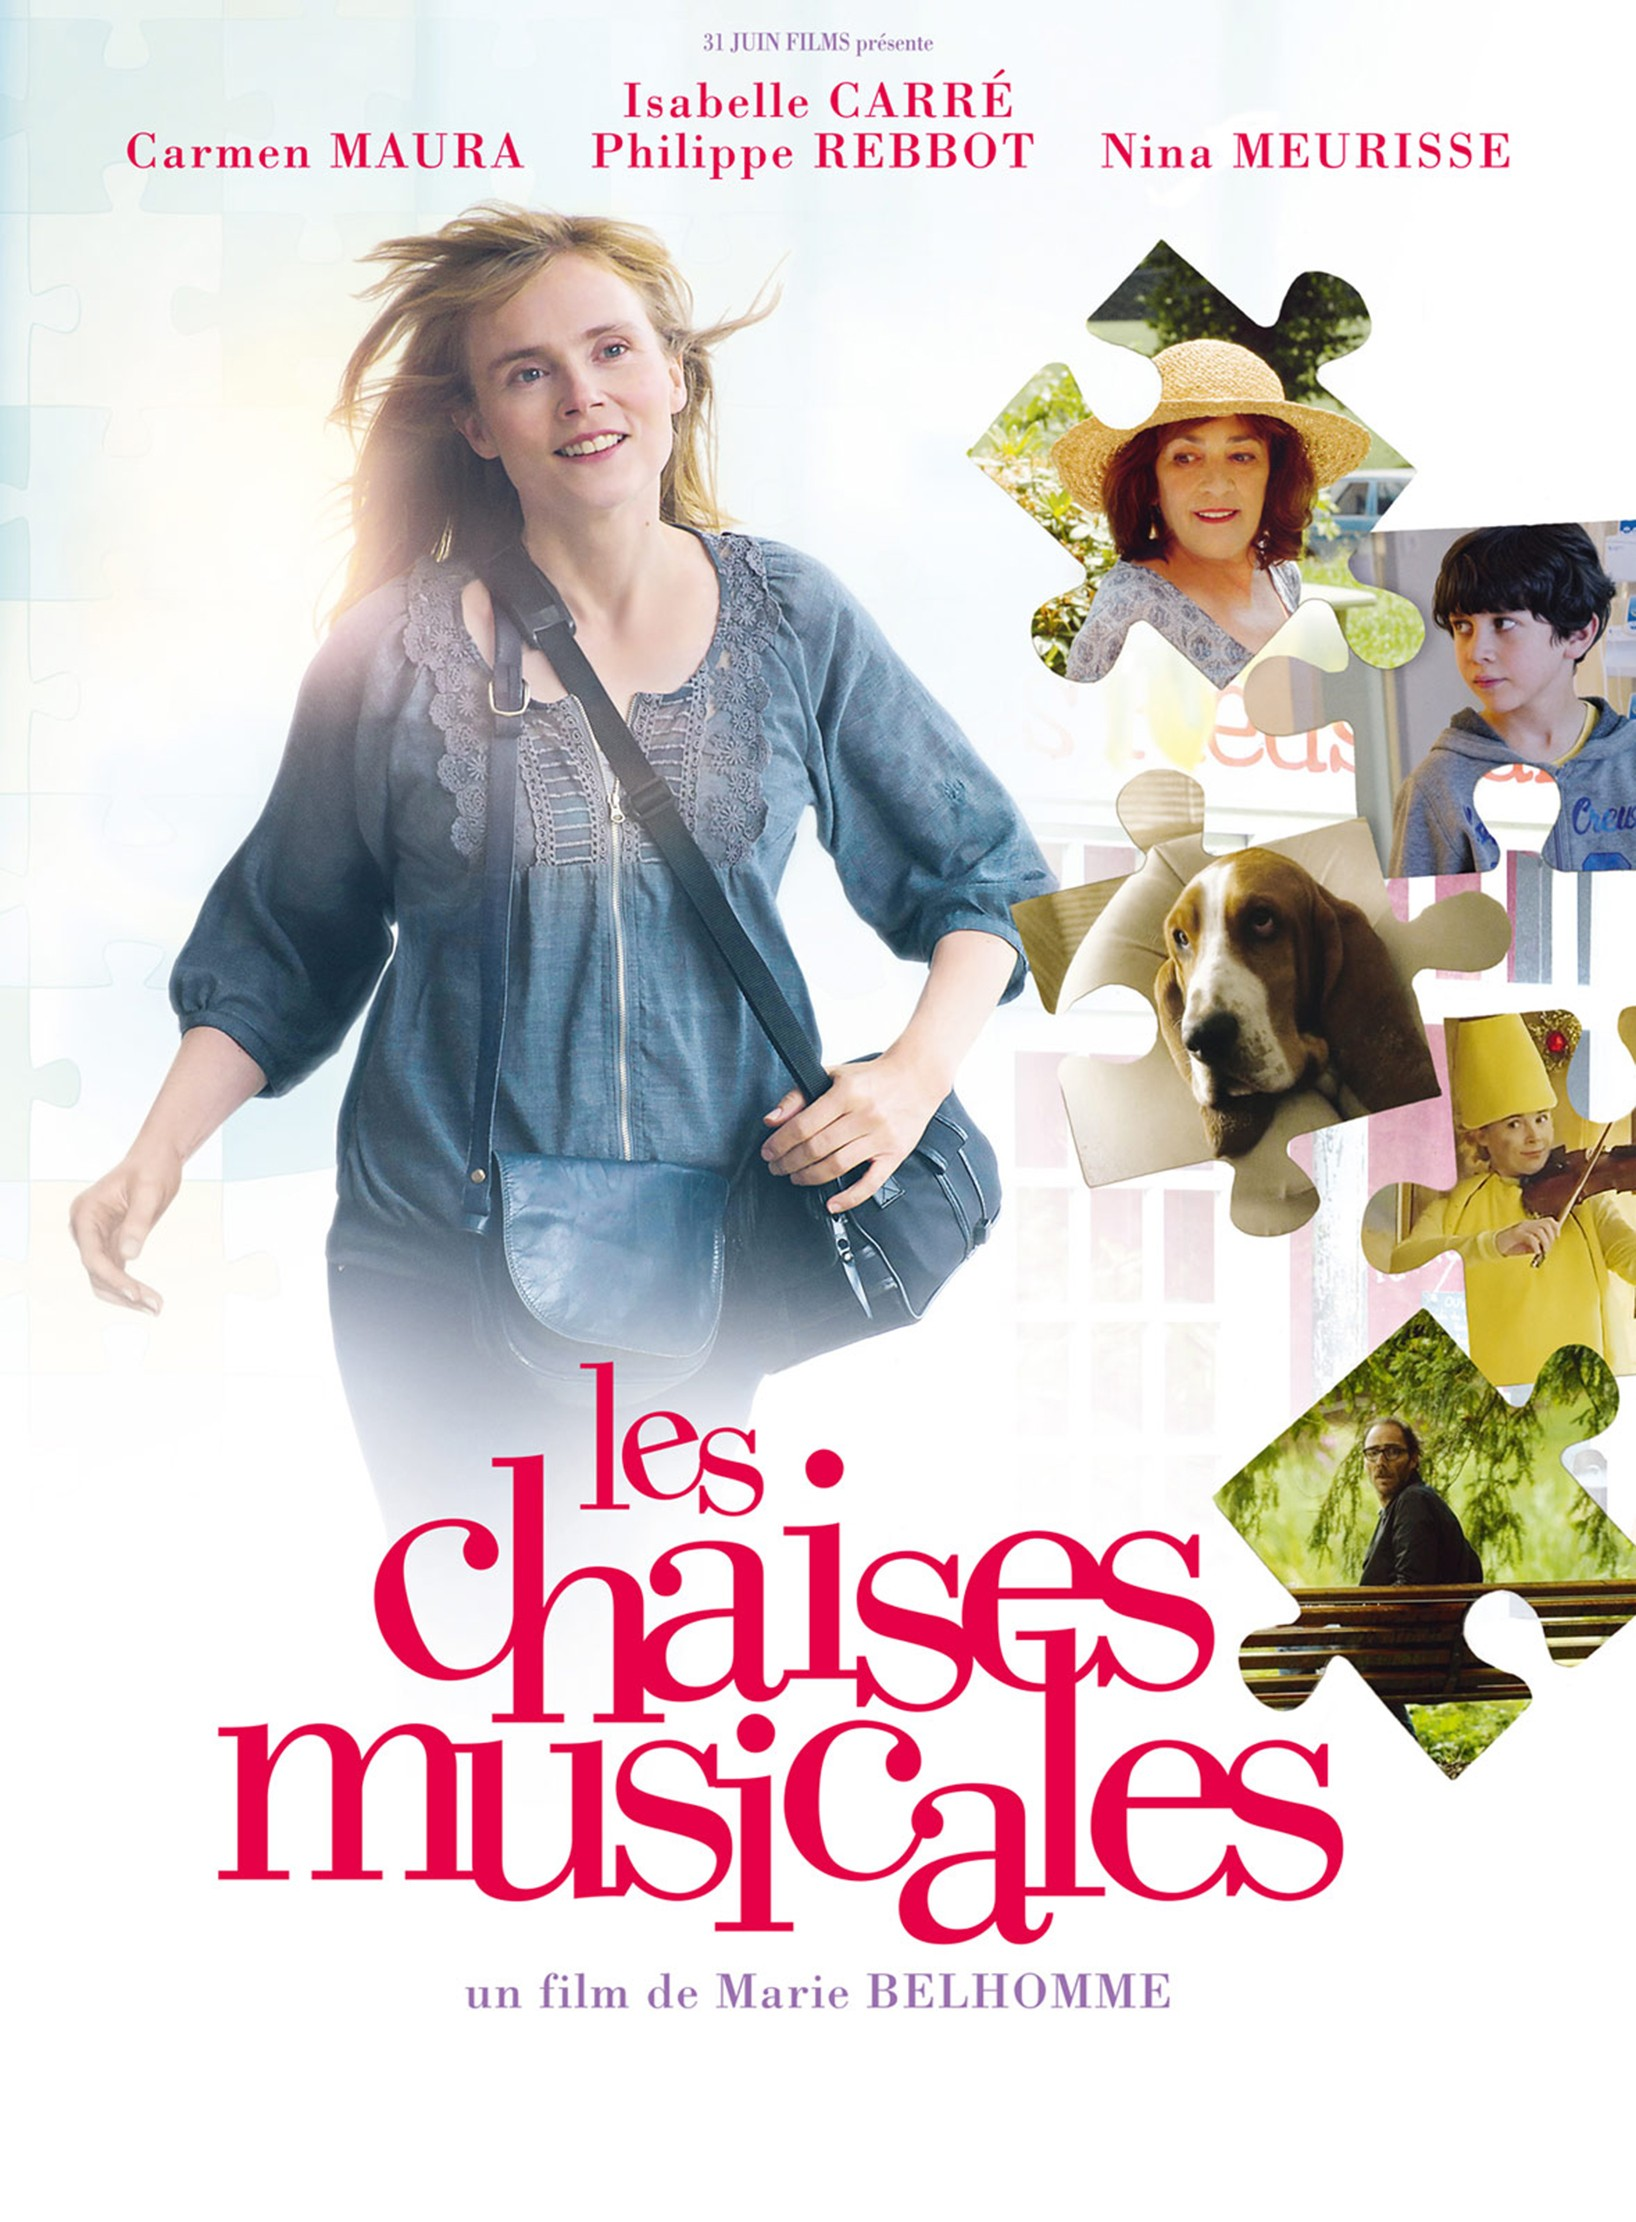 Musical Chairs (Les chaises musicales)